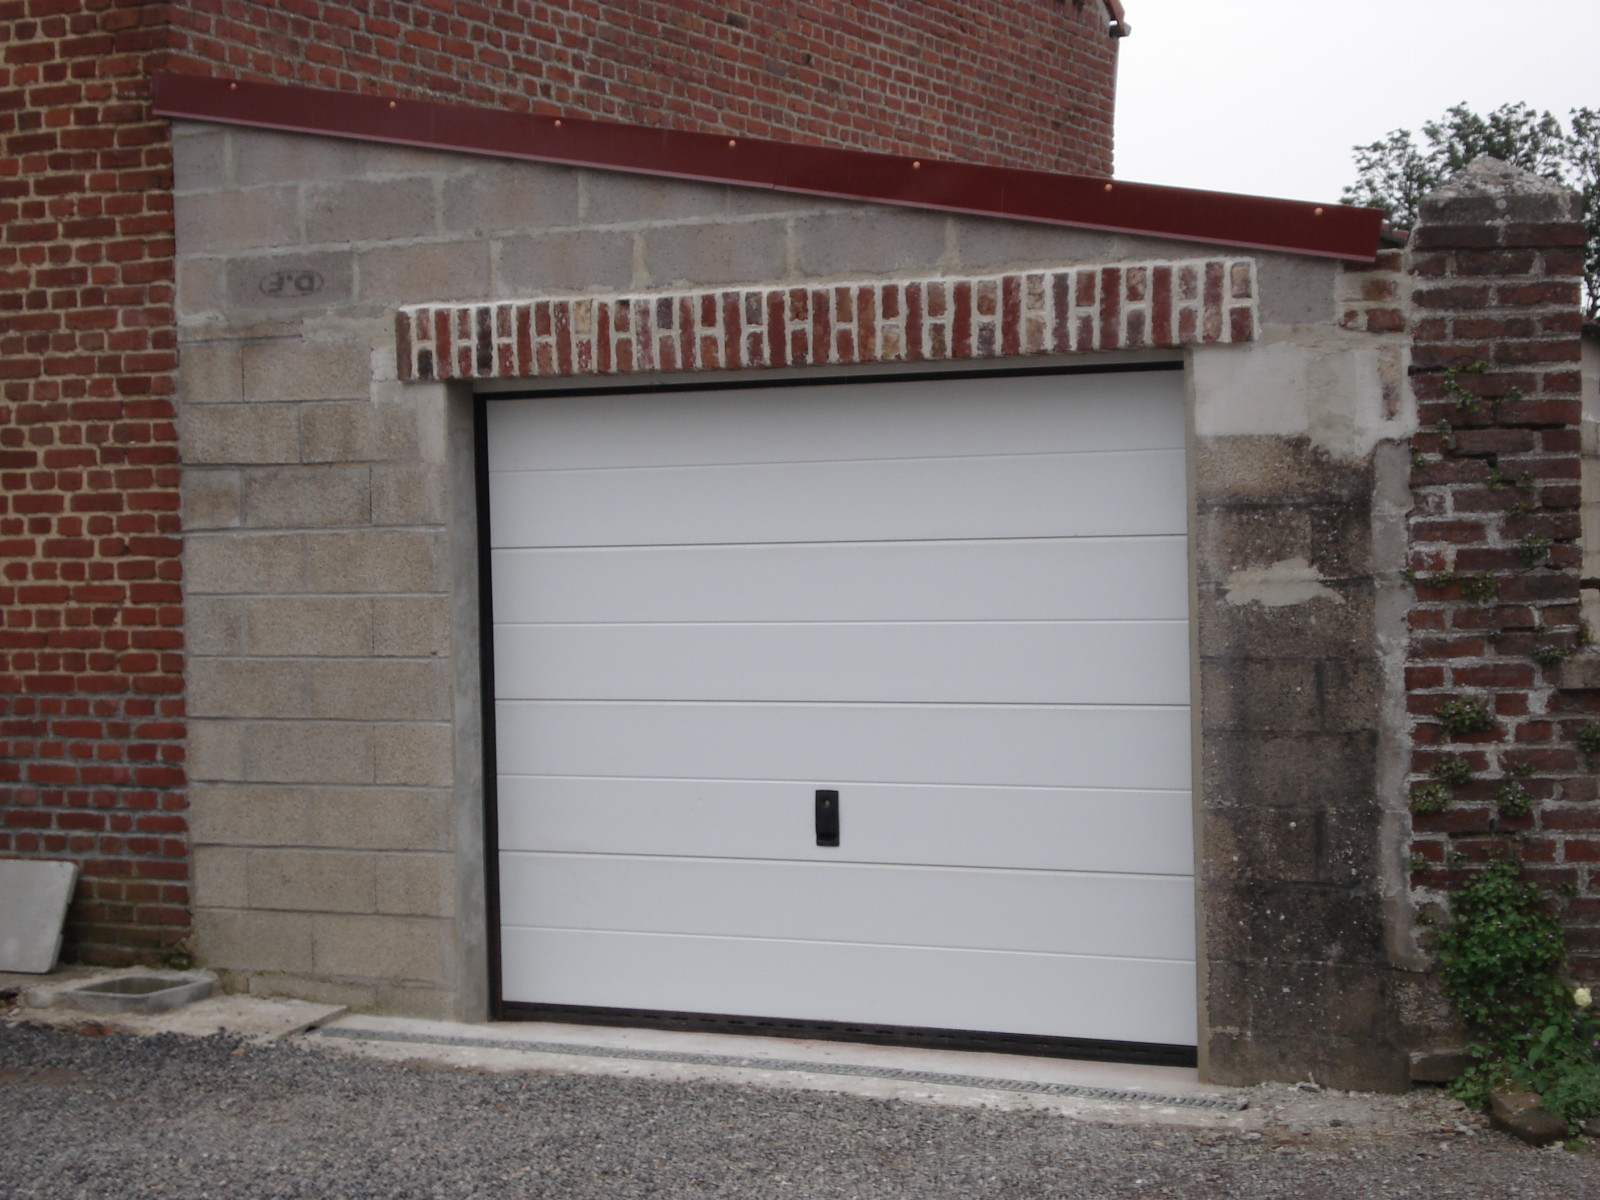 Isolation brico depot great meilleures con isolation caisson volet roulant brico depot e joint - Isolant porte de garage basculante ...